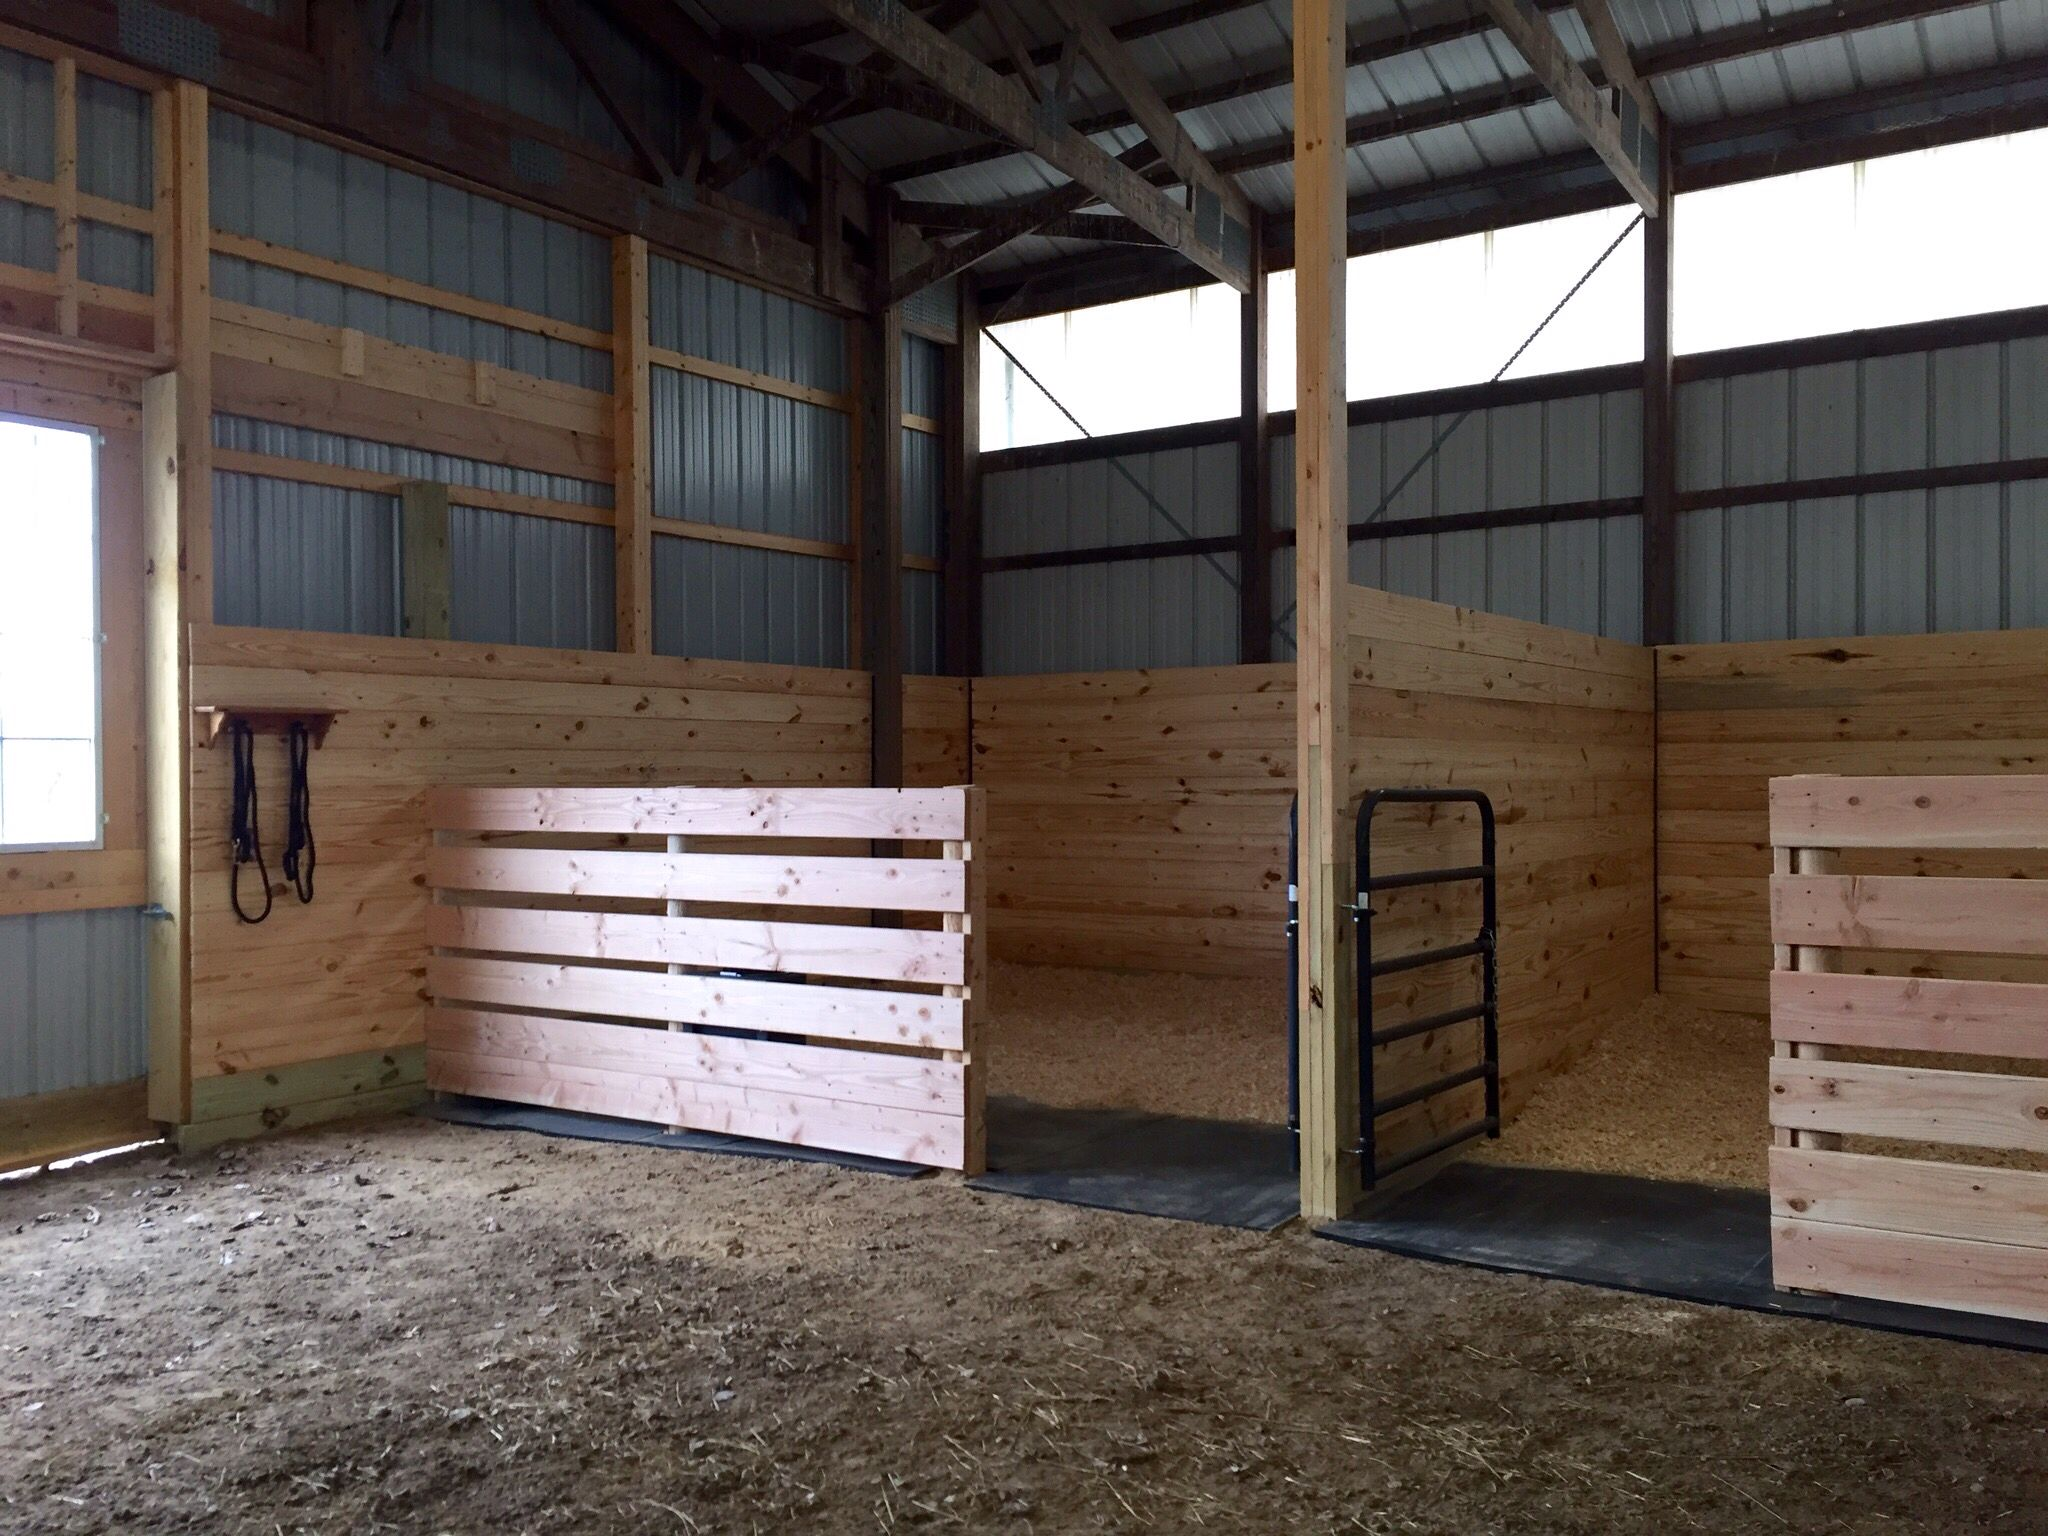 best 25 simple horse barns ideas on pinterest horse barns saddlery barn and horse farm layout - Horse Barn Design Ideas